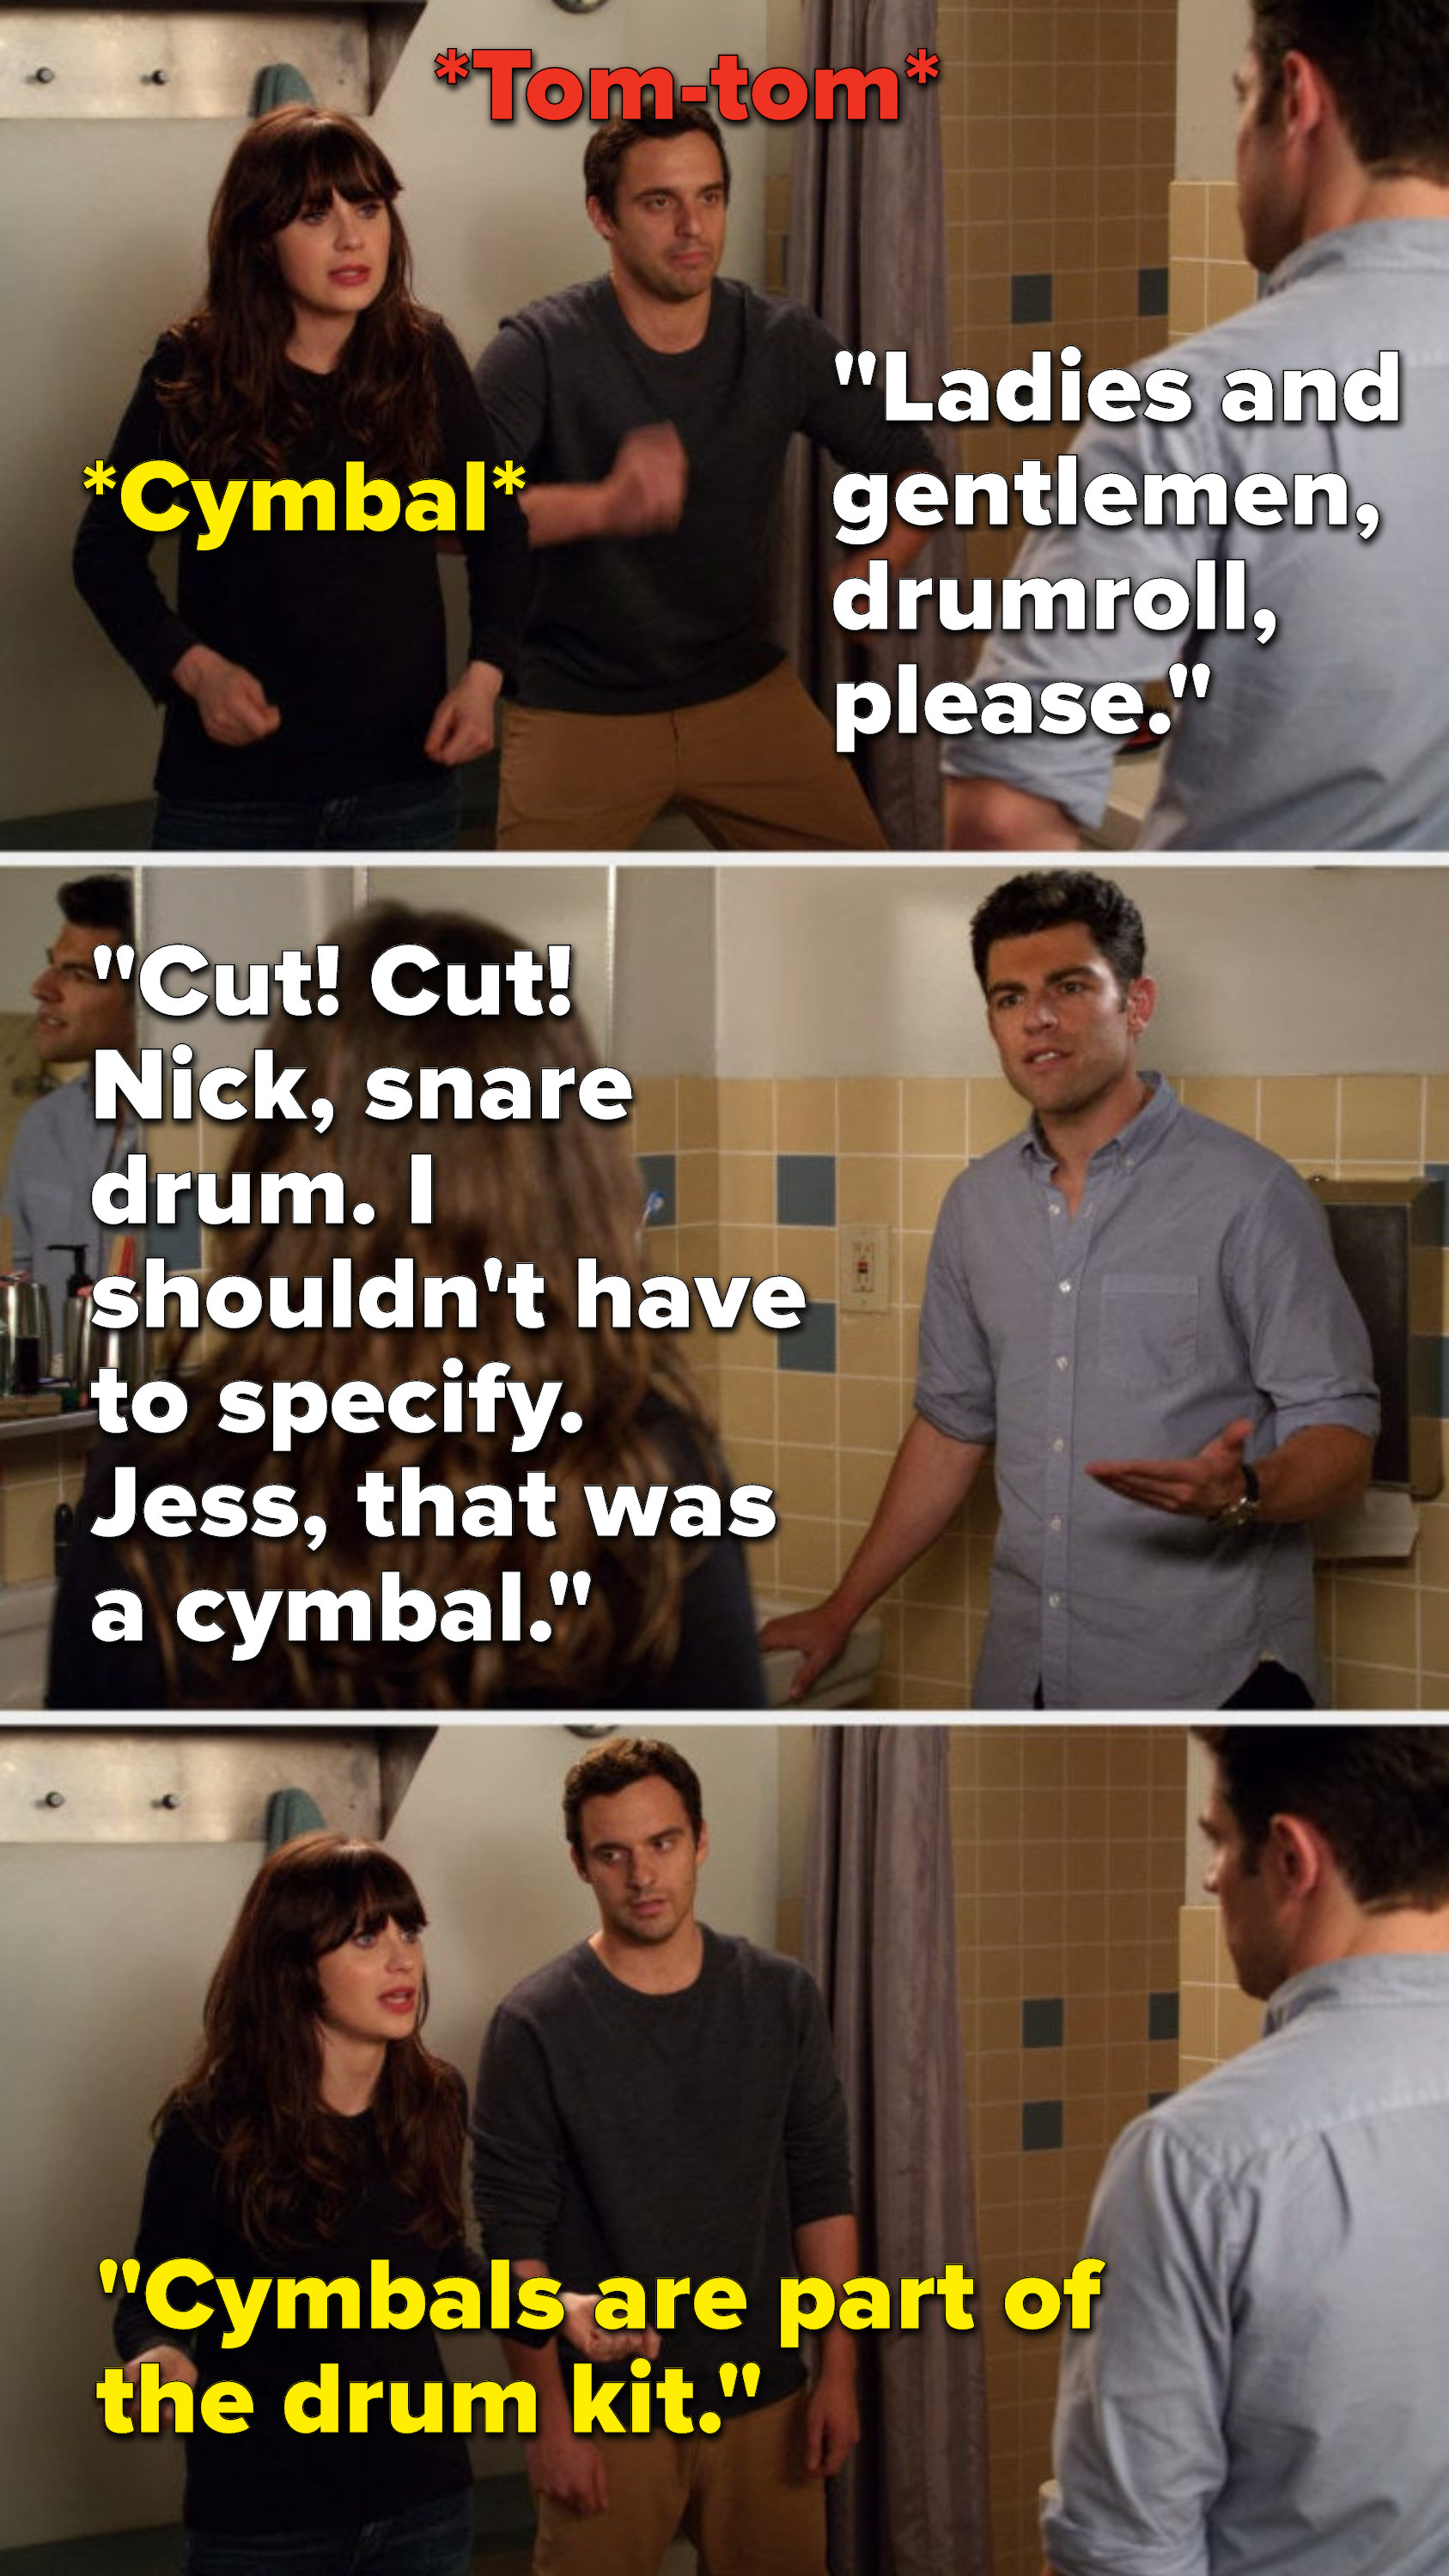 """Schmidt says, """"Ladies and gentlemen, drumroll, please,"""" Nick and Jess do a tom-tom and a cymbal, Schmidt says, """"Cut, cut, Nick, snare drum, I shouldn't have to specify, Jess, that was a cymbal,"""" and Jess says, """"Cymbals are part of the drum kit"""""""